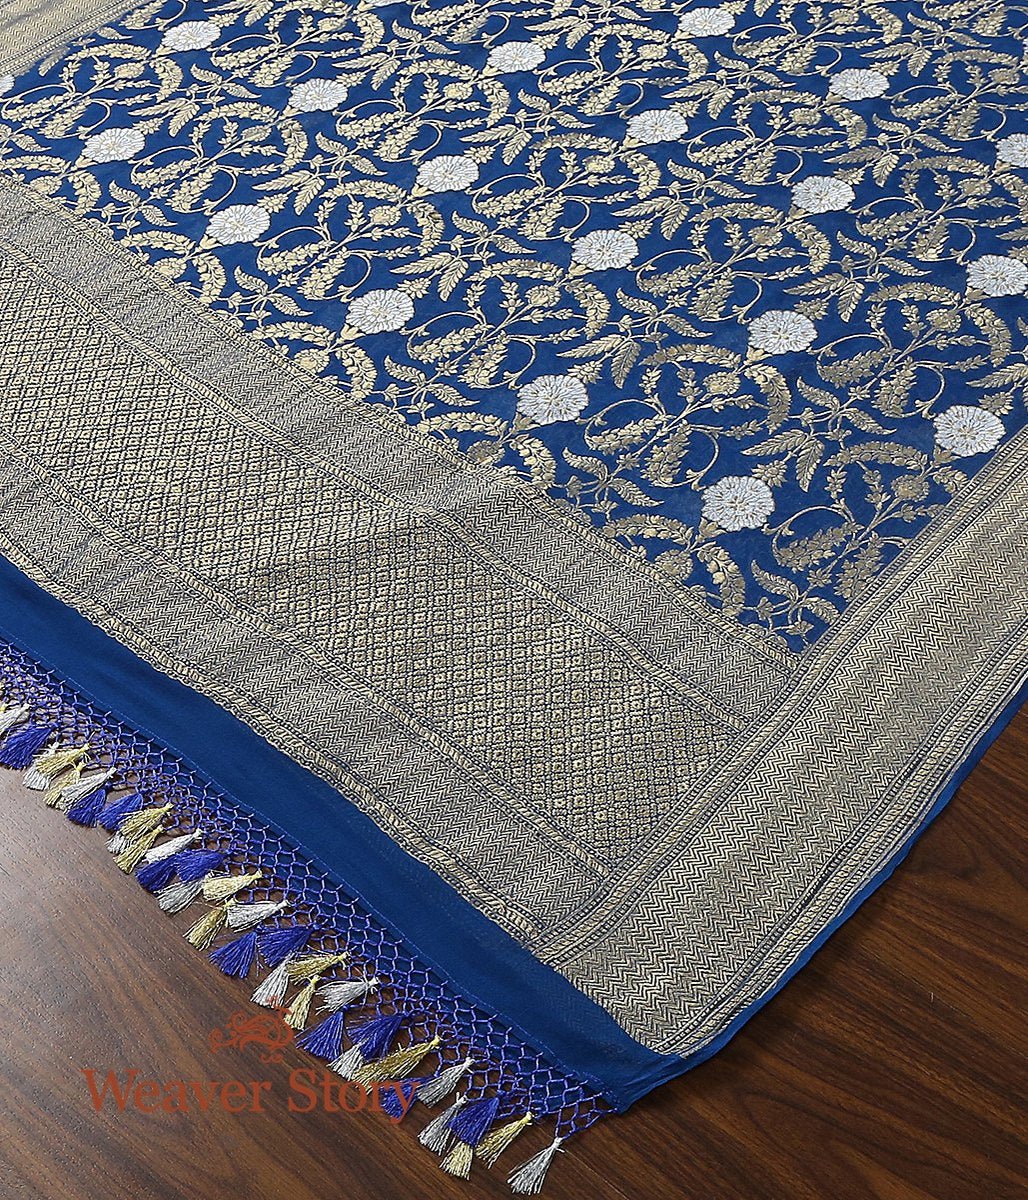 Handwoven Banarasi Georgette Cutwork Dupatta in Blue